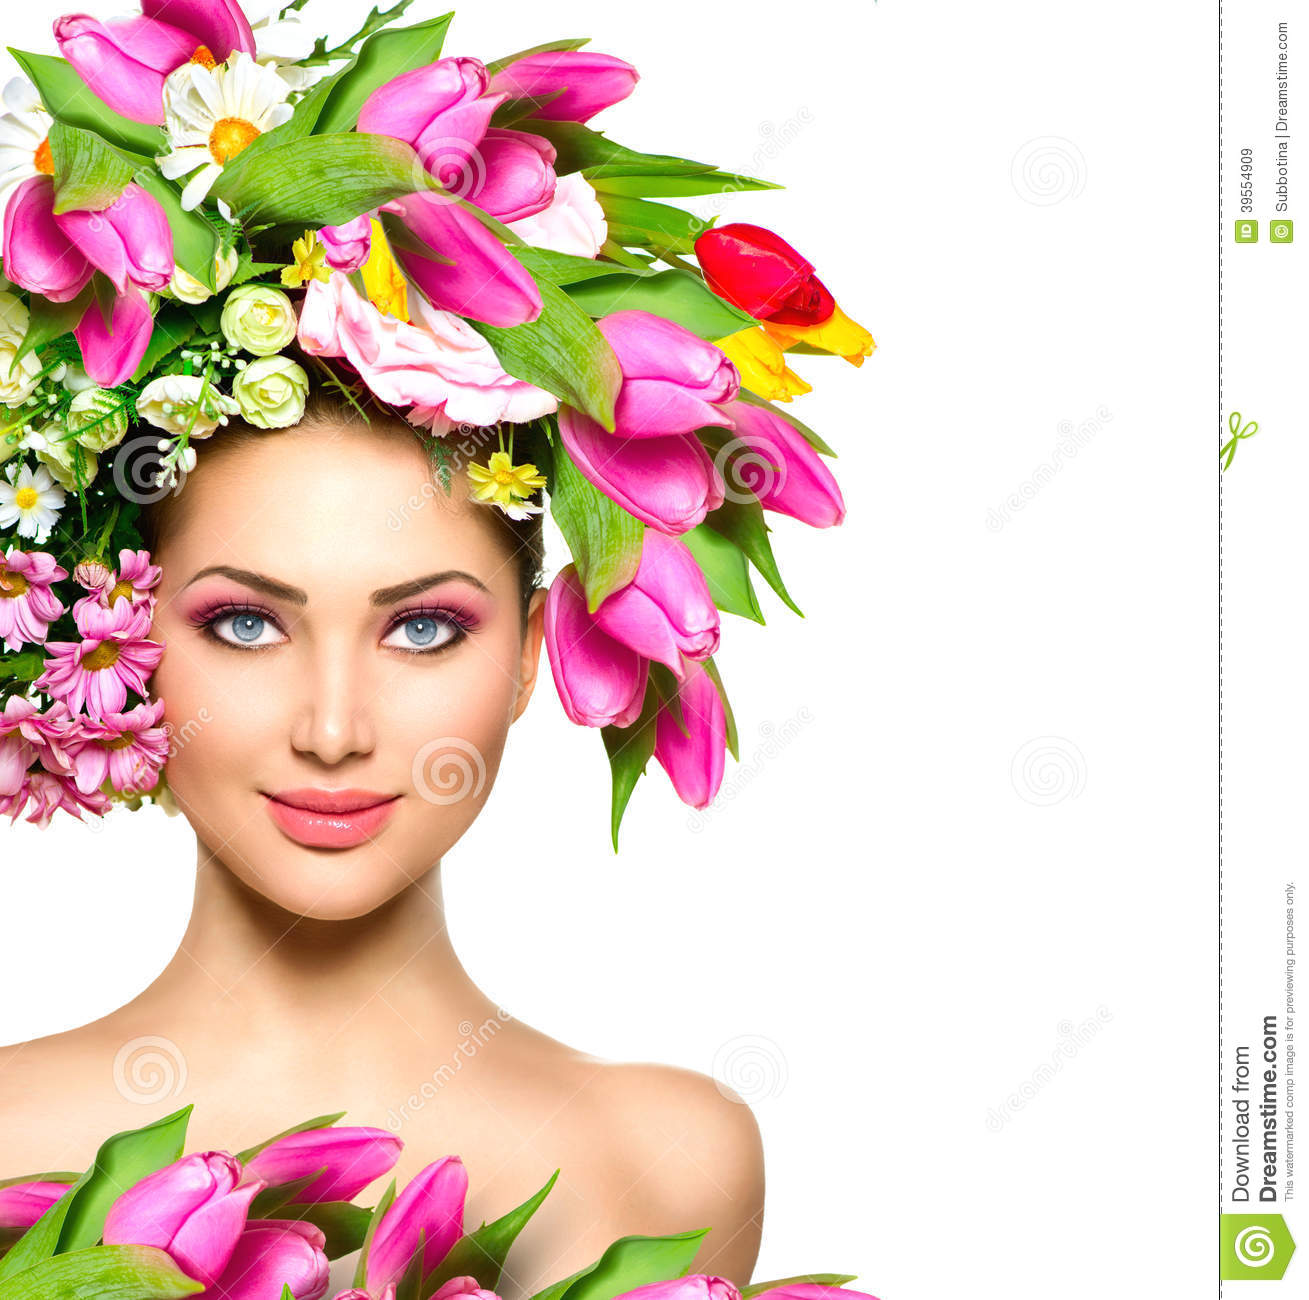 Beauty Girl With Flowers Hairstyle Stock Image Image Of Make